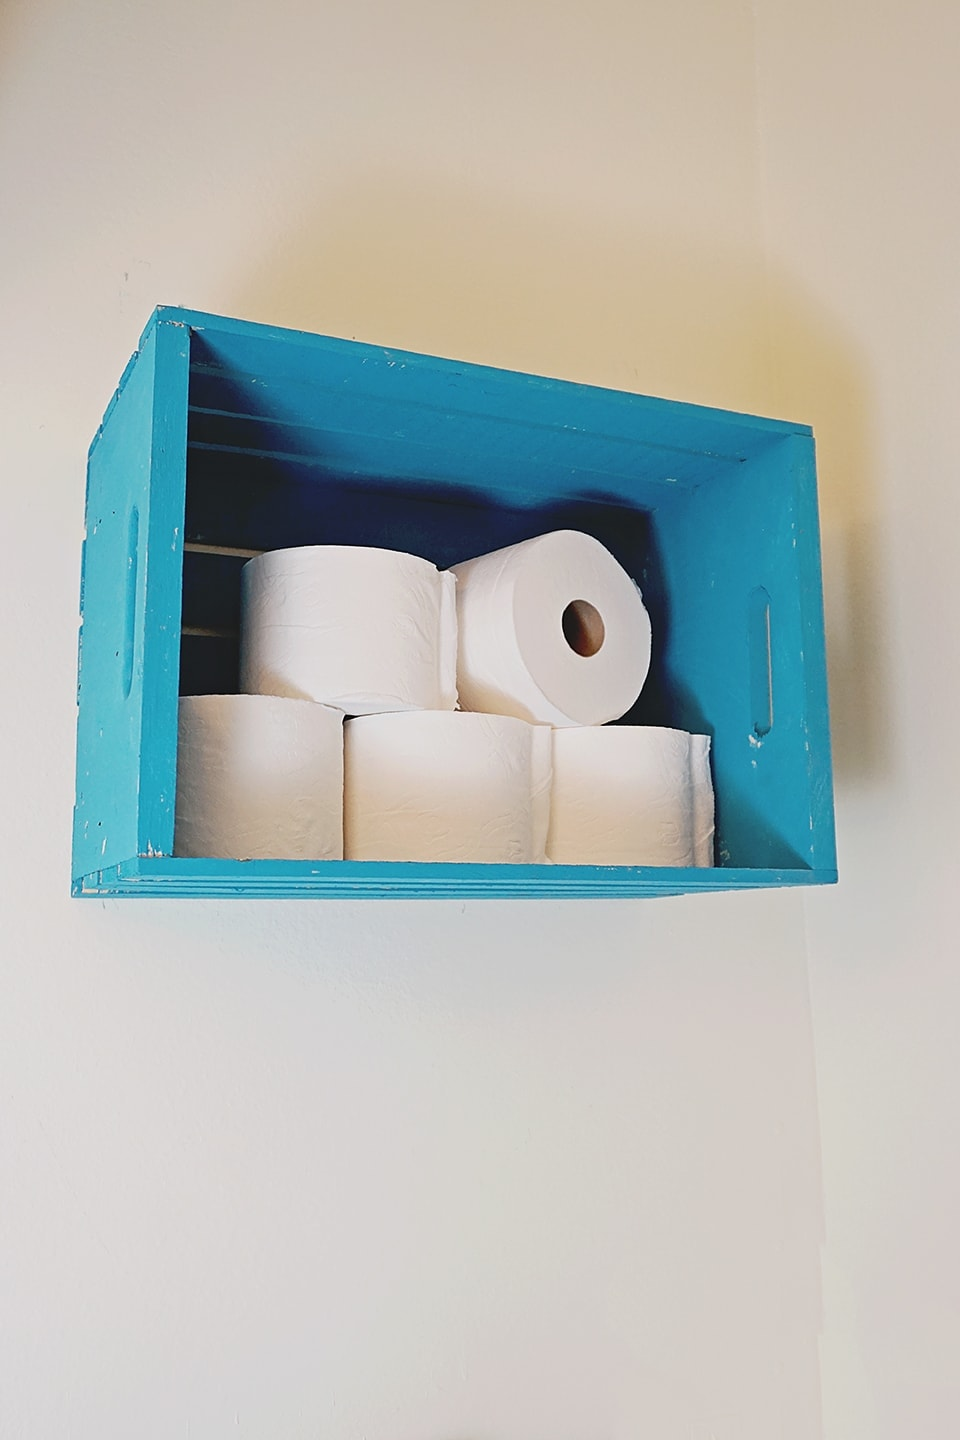 DIY Bathroom Air Freshener